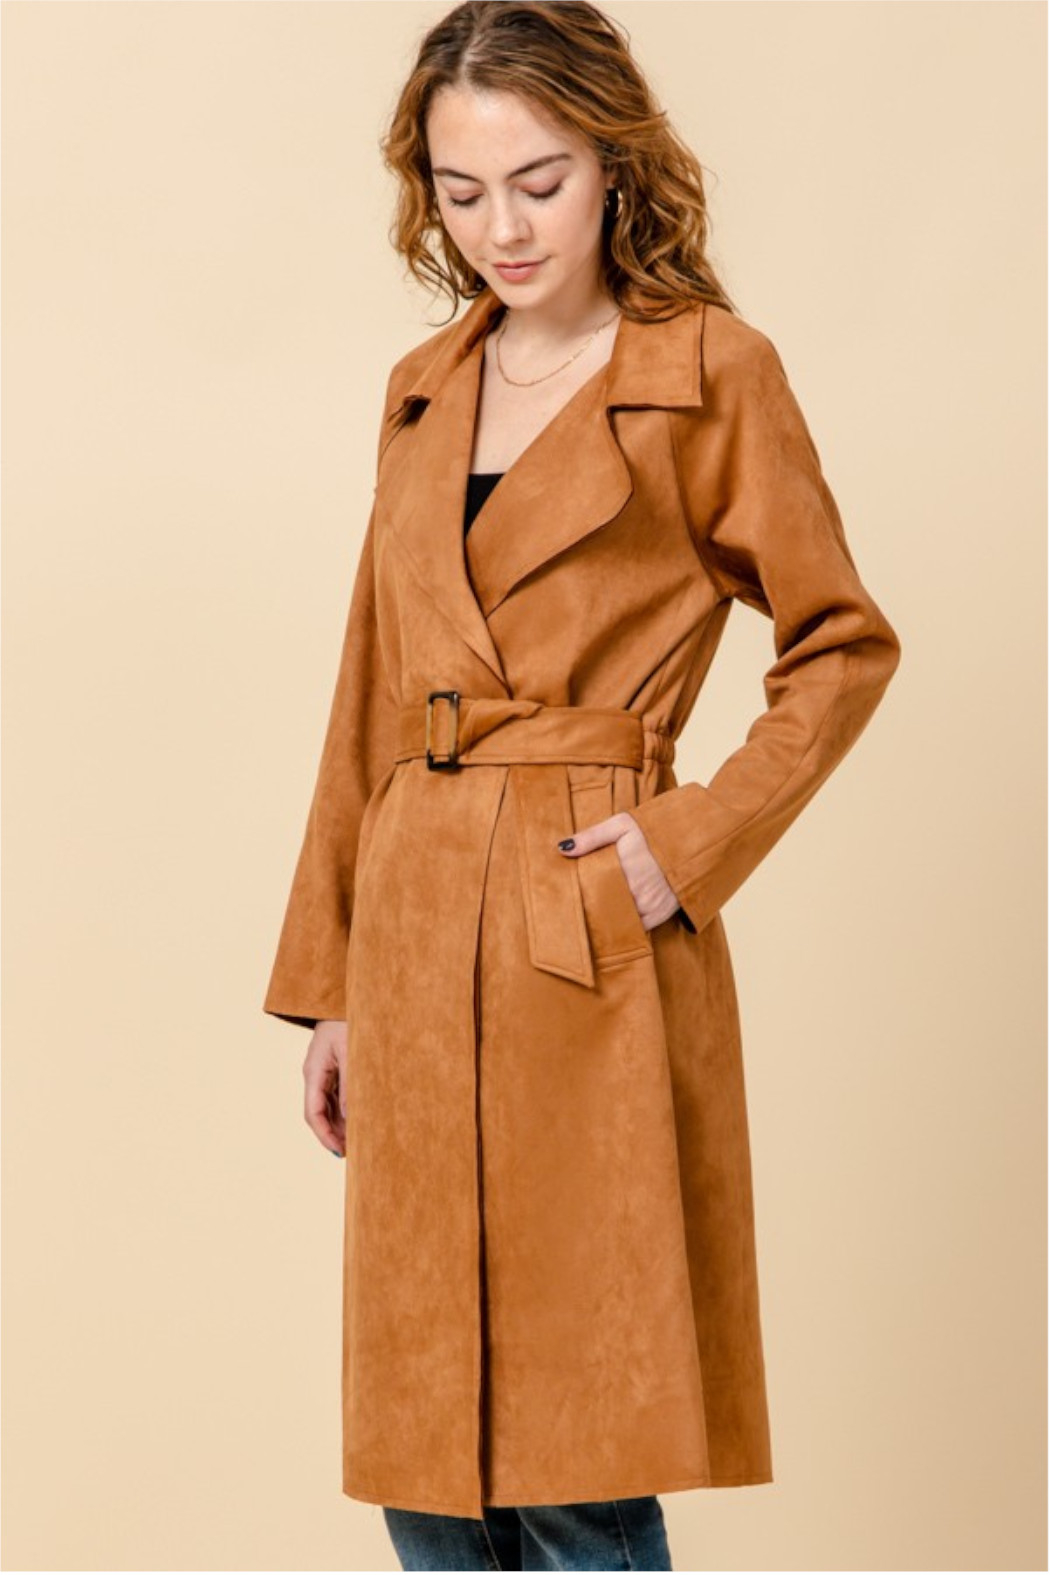 HYFVE Camel Suede Trench Coat - Front Full Image